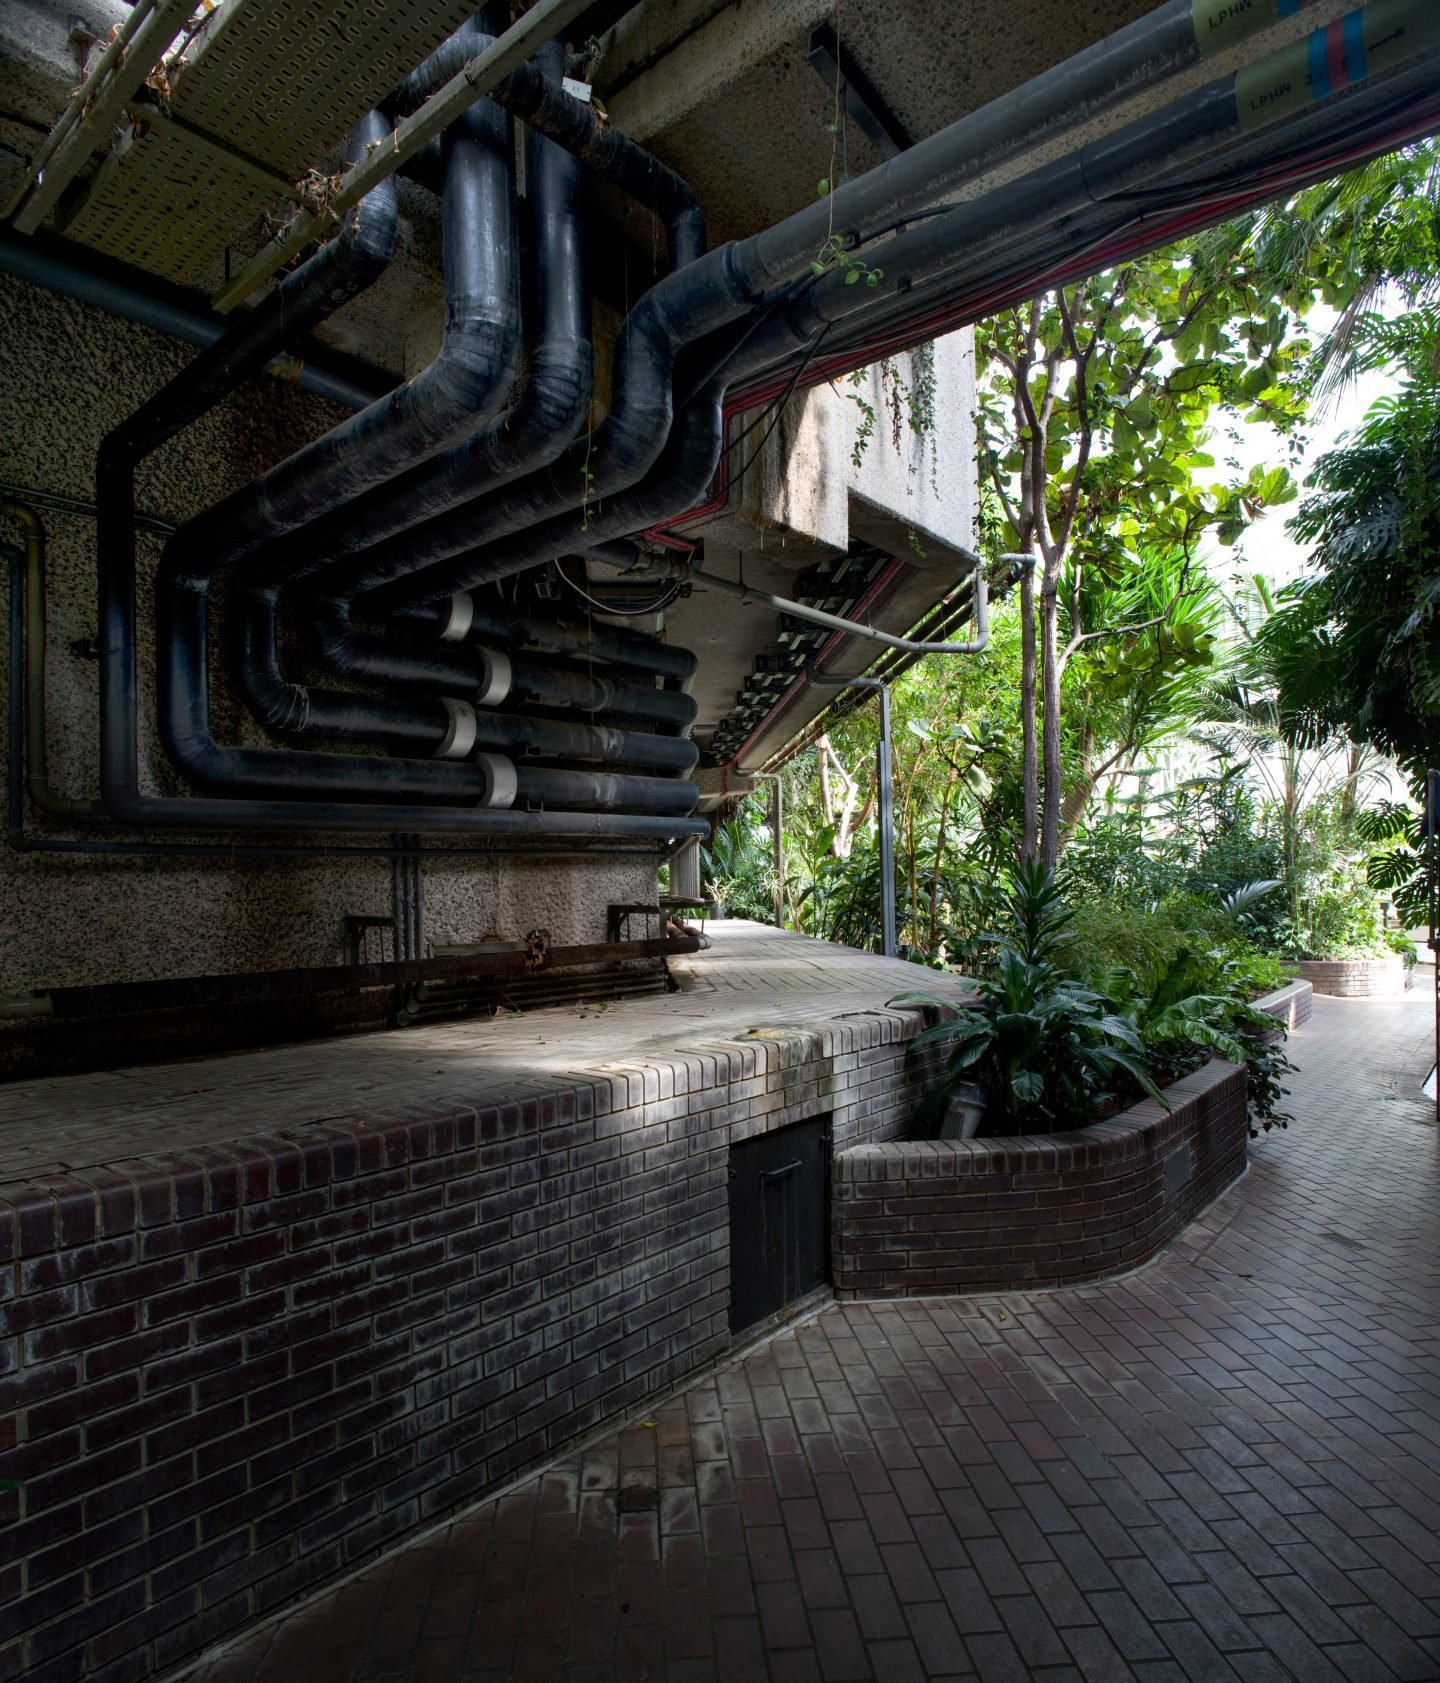 IGNANT-Travel-Luke-Hayes-The-Barbican-Conservatory-010